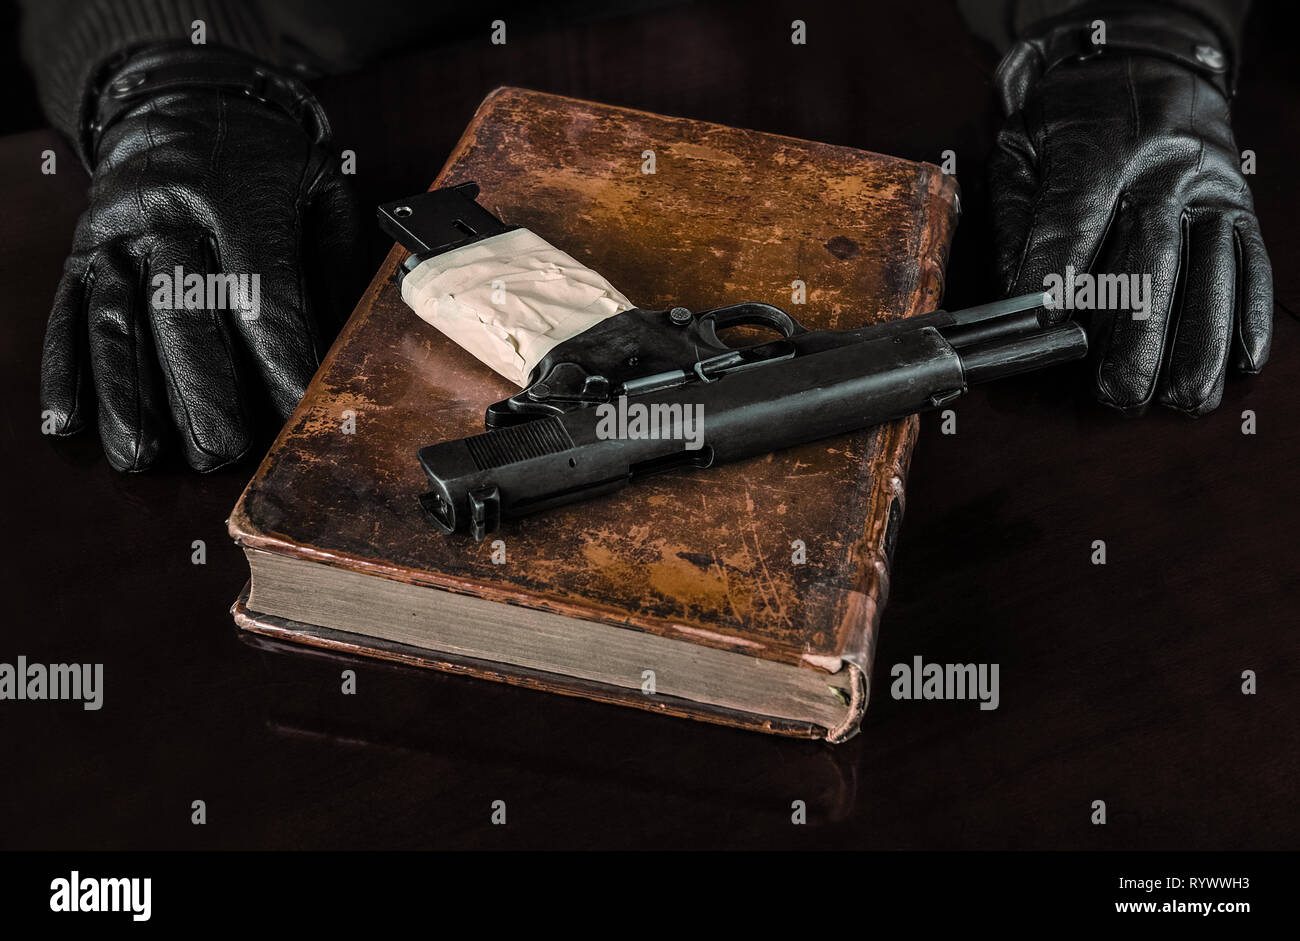 On an old book, probably a book of wisdom, a pistol whose handle is wrapped in tape. Also we see the gloved hands of someone ready to act. Stock Photo